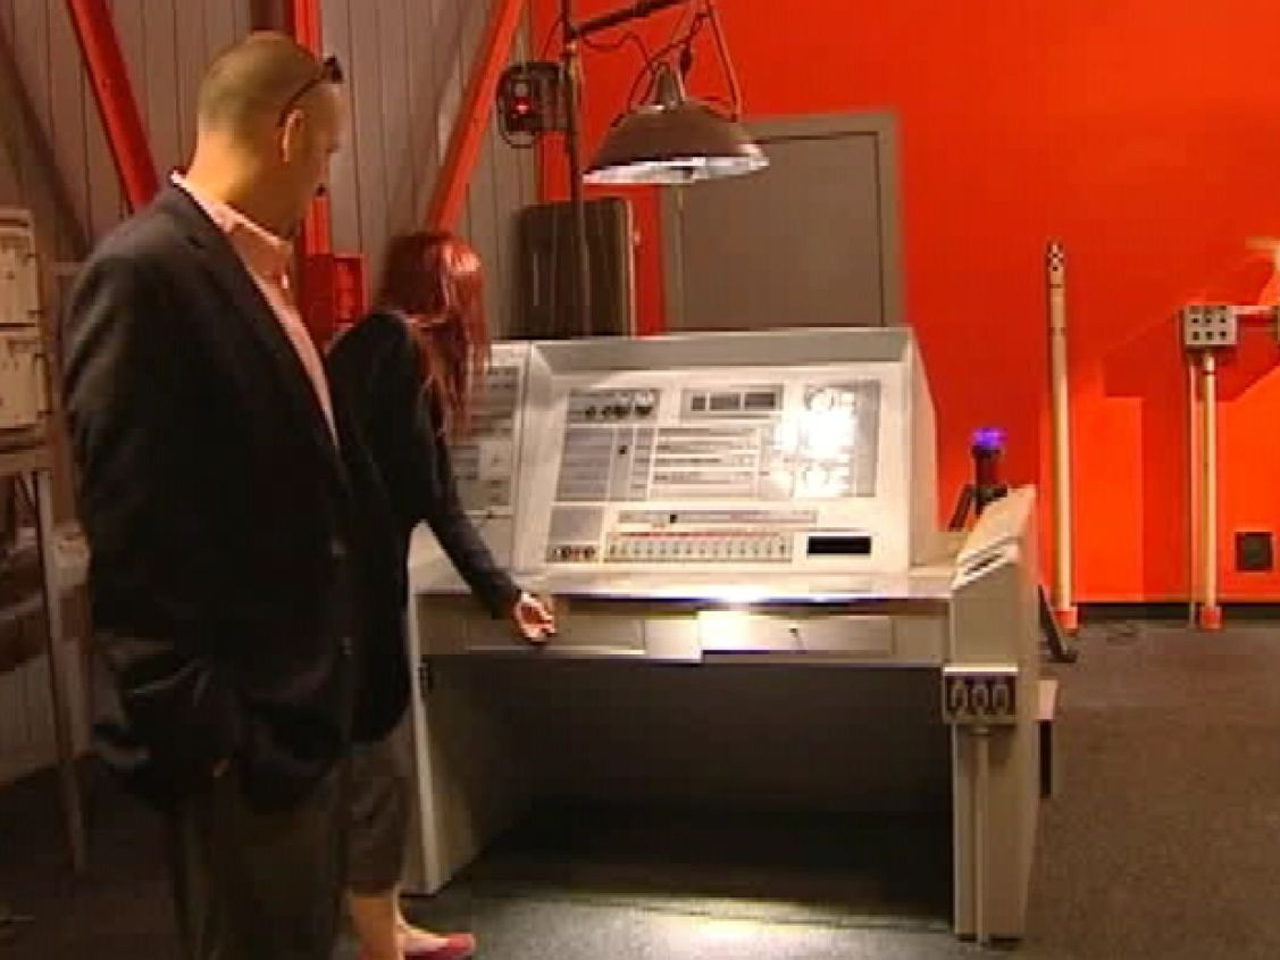 Nuclear Silo For Sale Missile Silo Converted Into Home Goes On Sale For 750k Nbc News